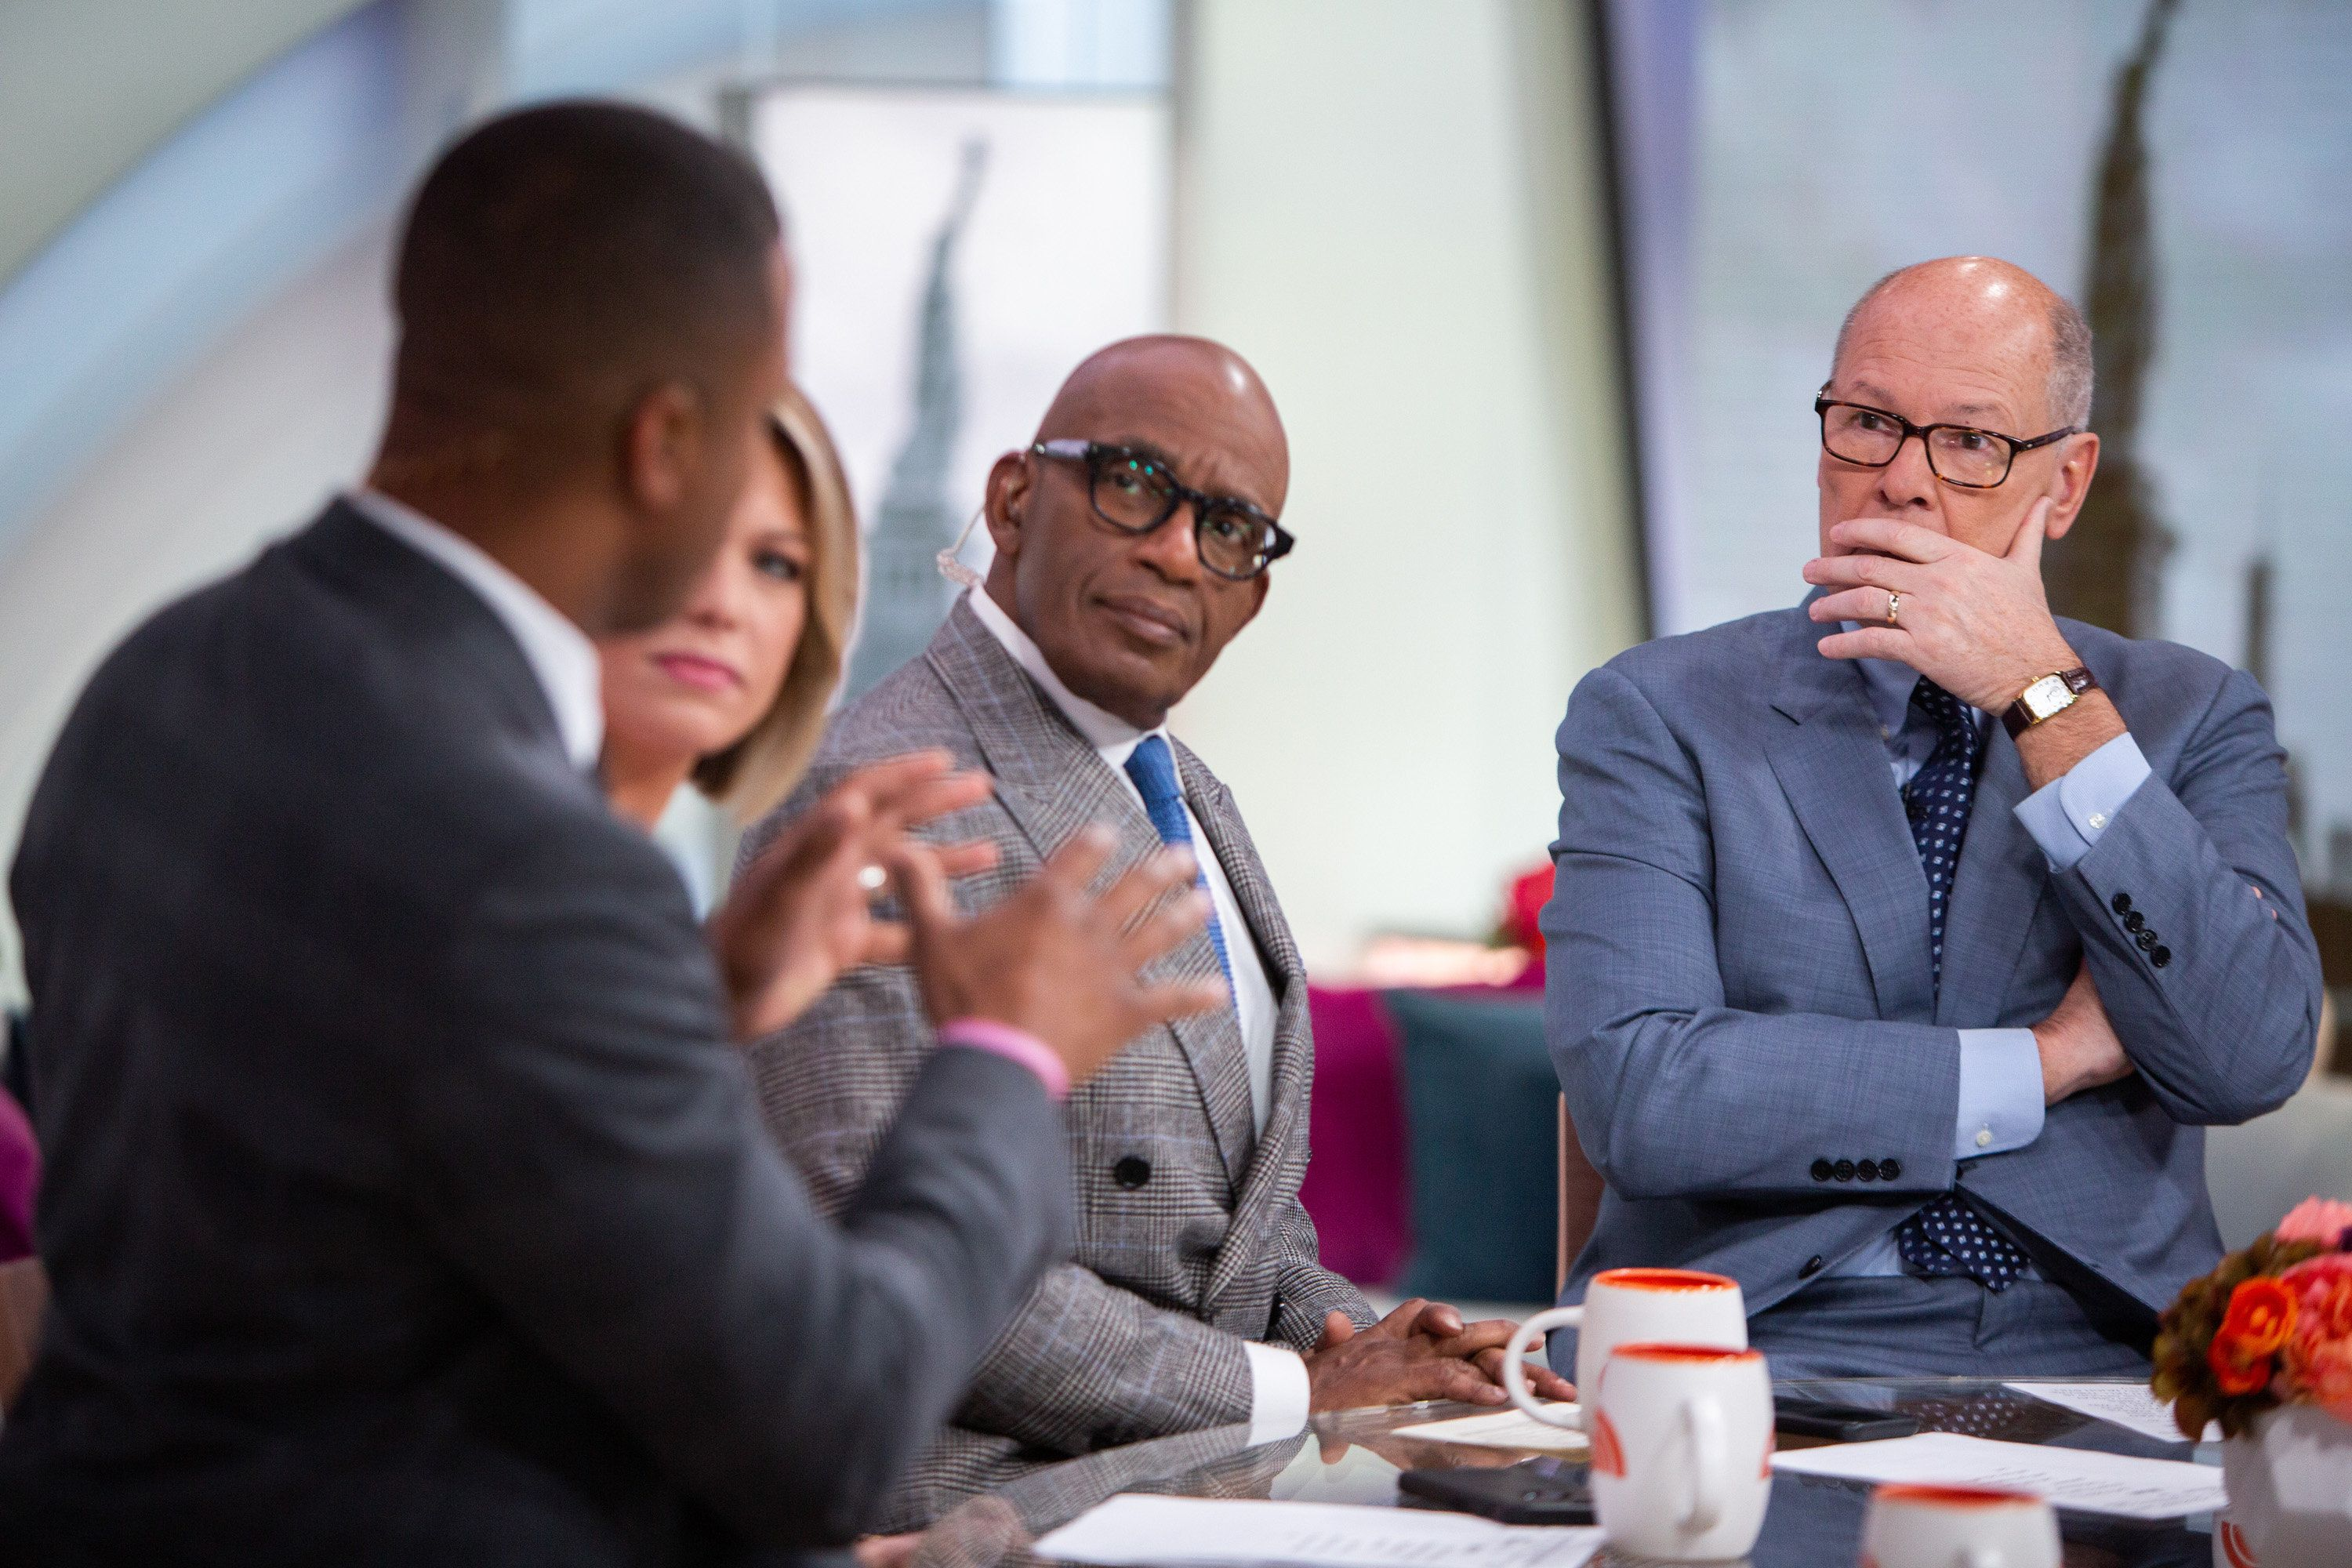 TODAY -- Pictured: Craig Melvin, Dylan Dreyer, Al Roker and Harry Smith on Thursday, January 10, 2019 -- (Photo by: Nathan Congleton/NBC/NBCU Photo Bank via Getty Images)